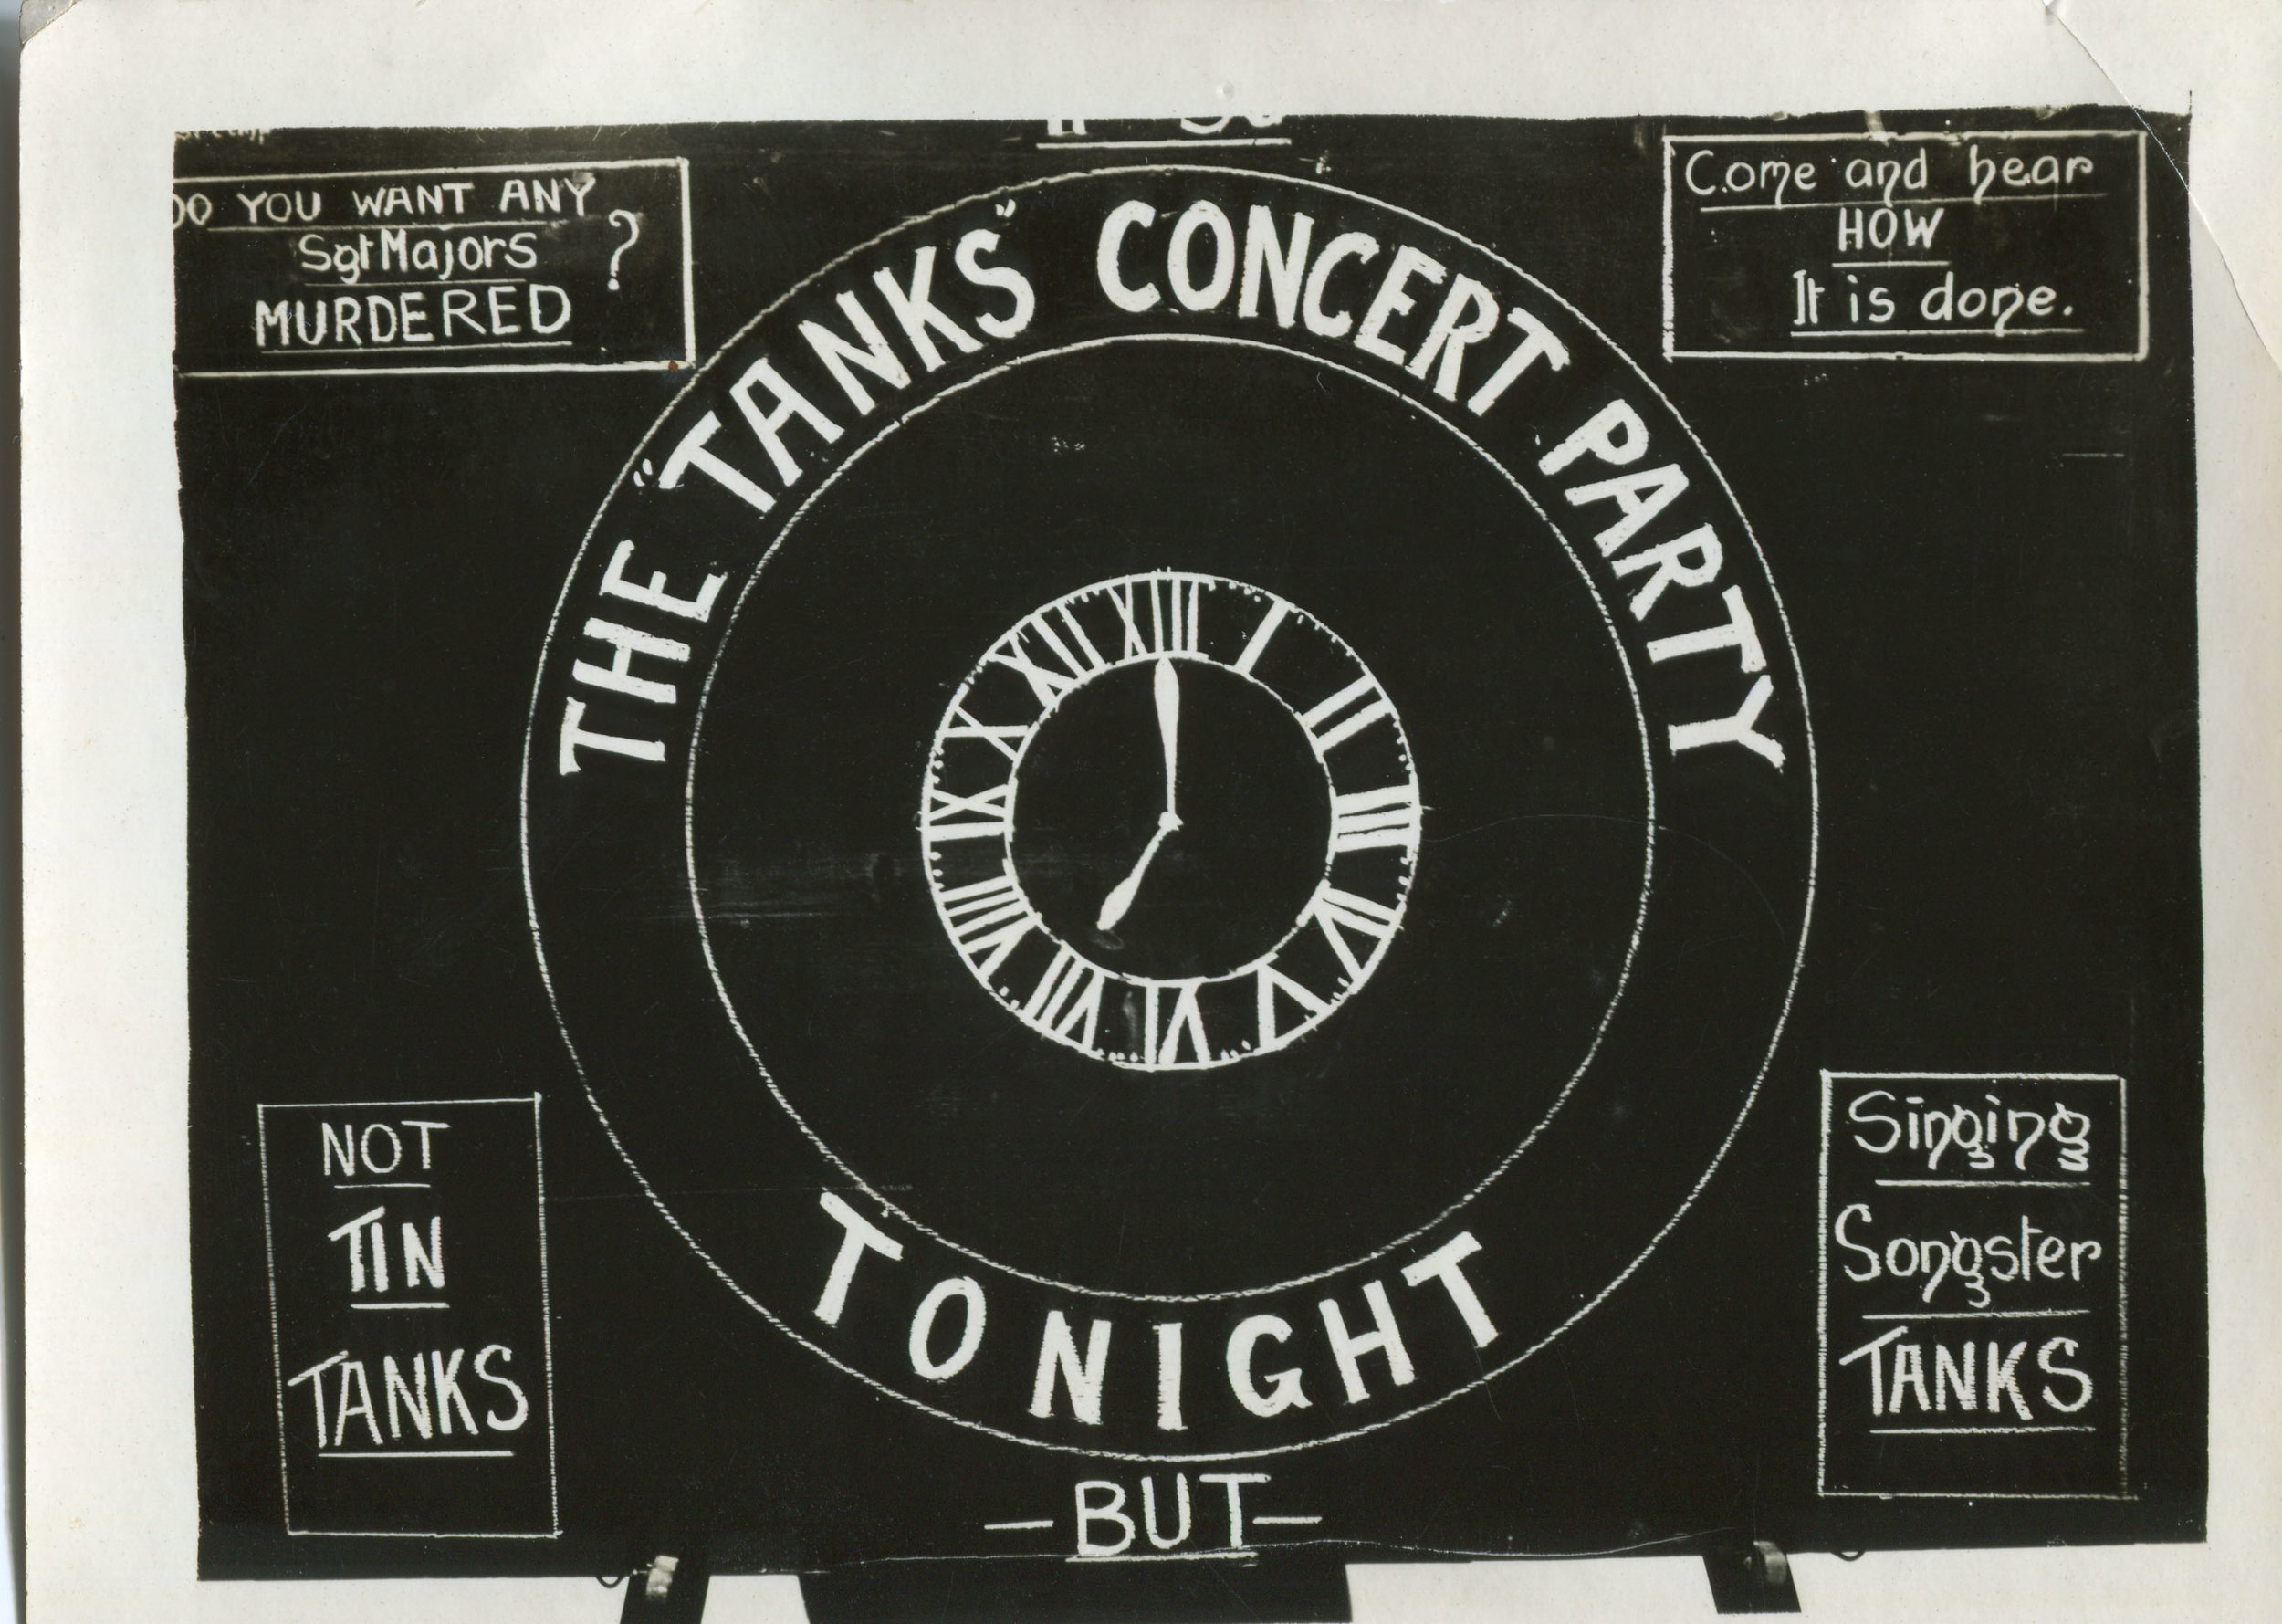 reg walters040 The Tanks Concert Party.jpg